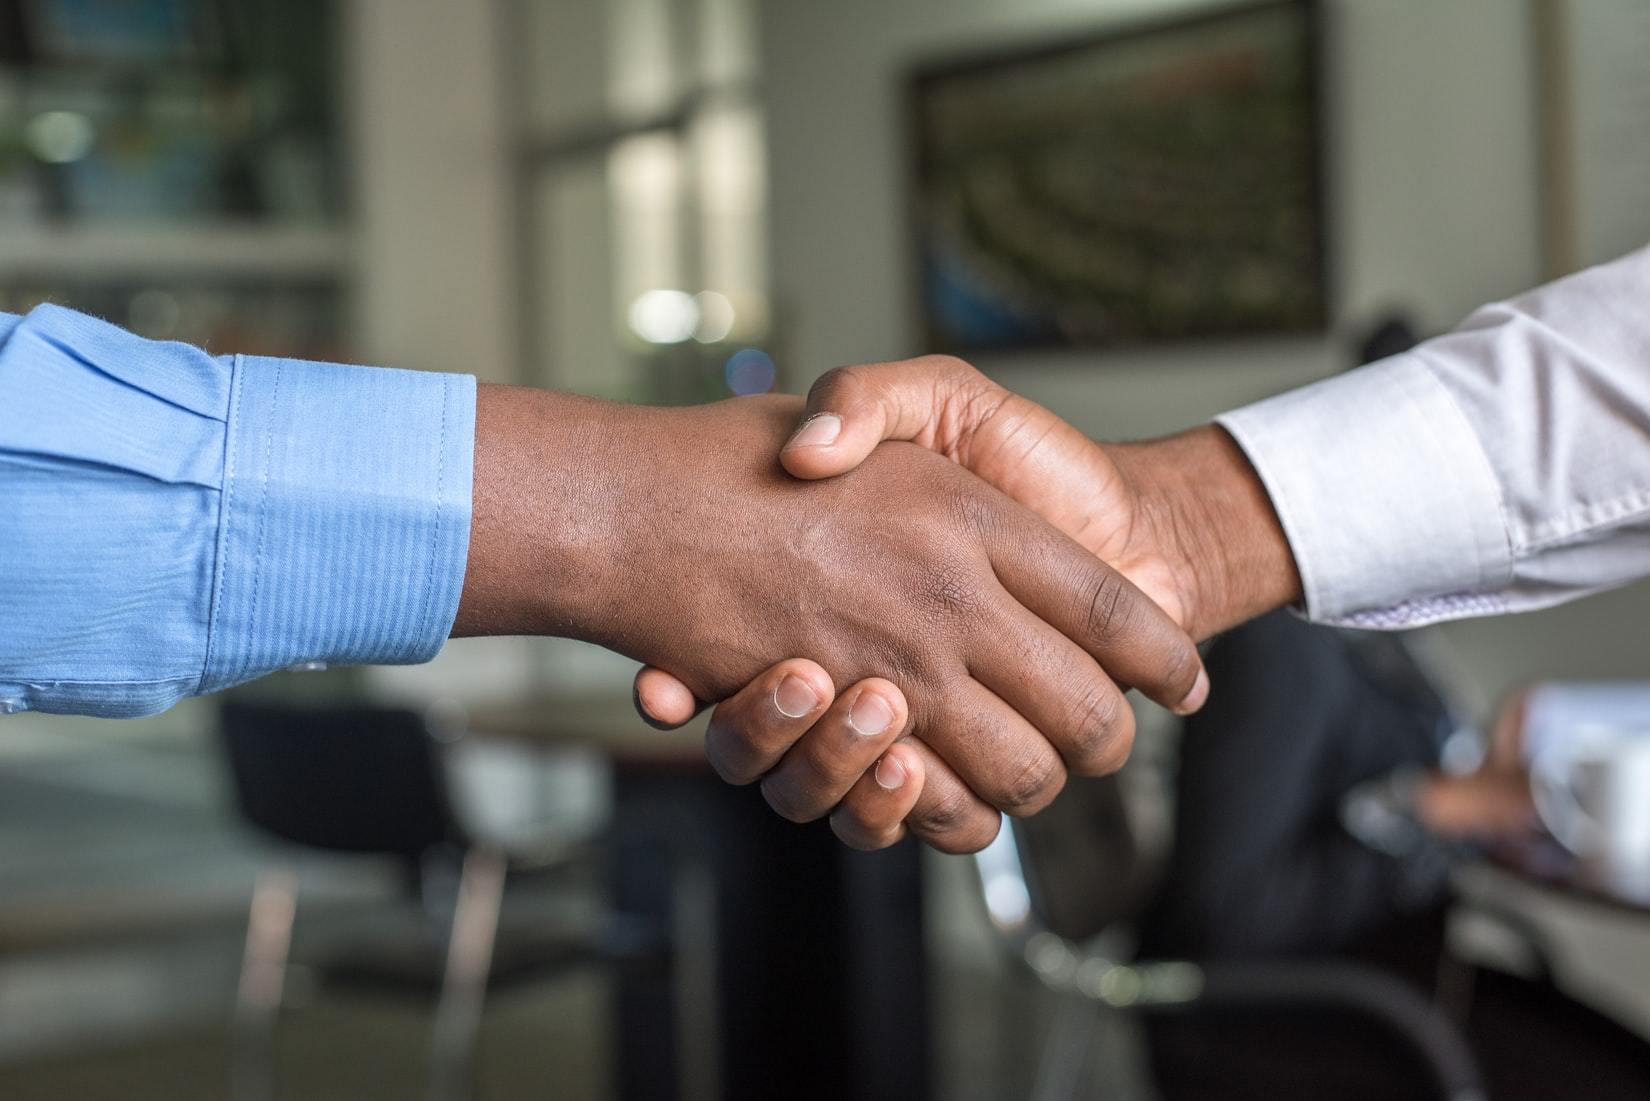 Two people of different races shaking hands